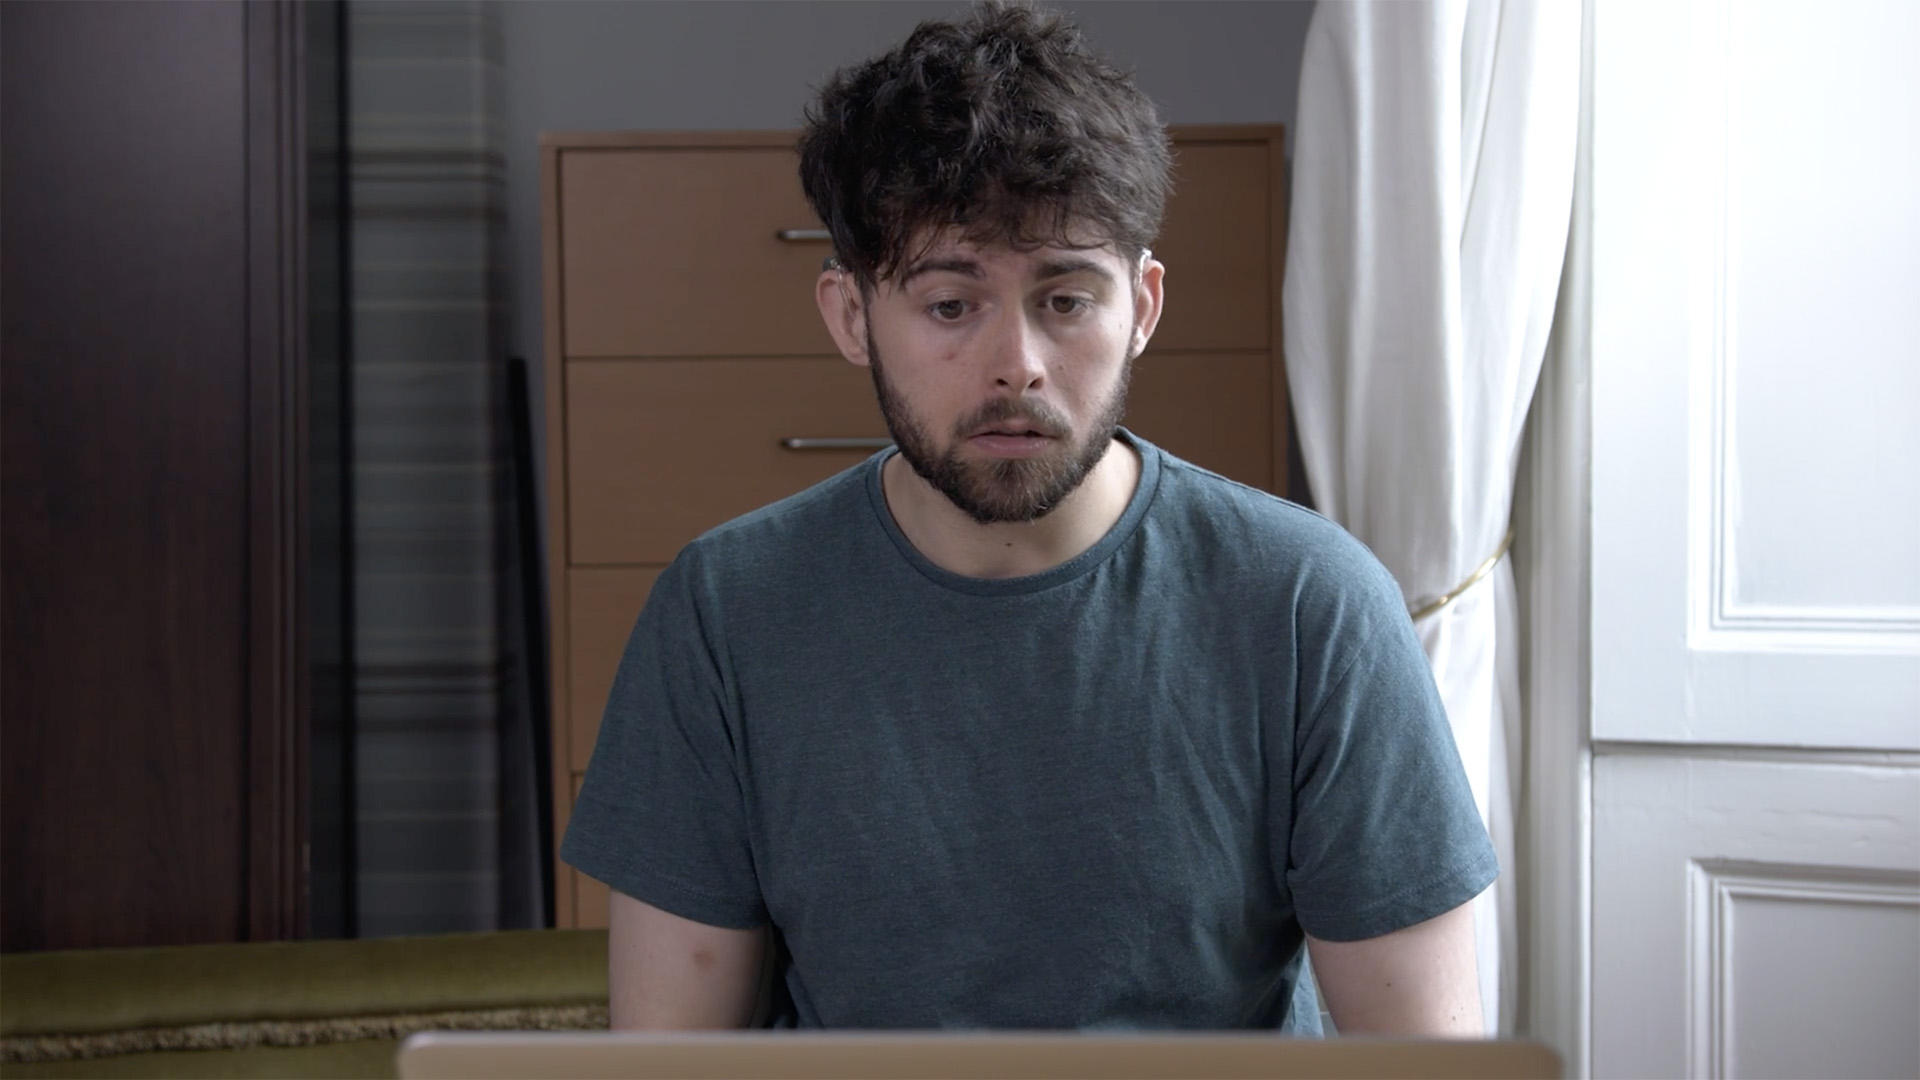 A person wearing hearing aids looks at a computer screen in their bedroom